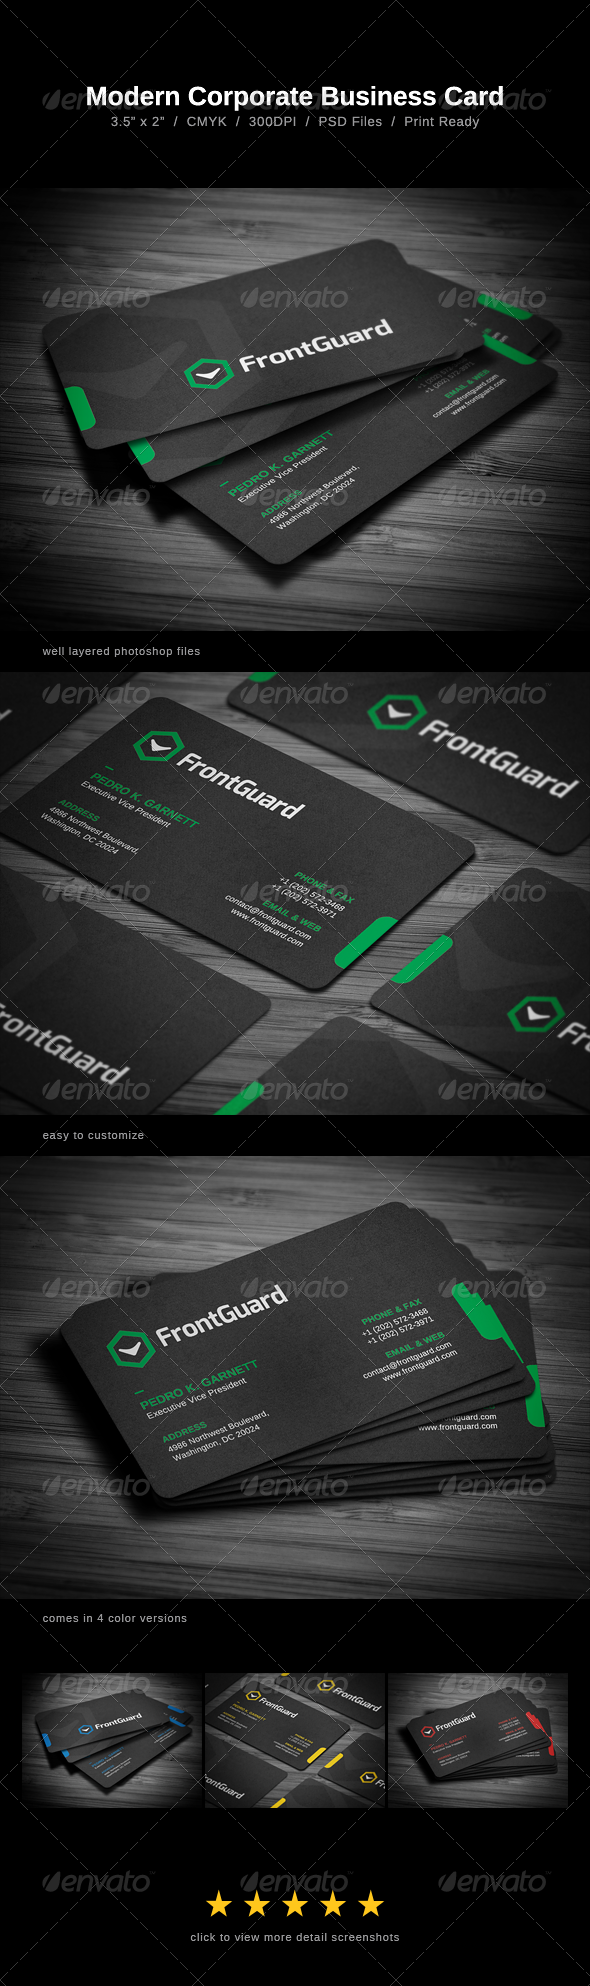 Modern Corporate Business Card - Business Cards Print Templates